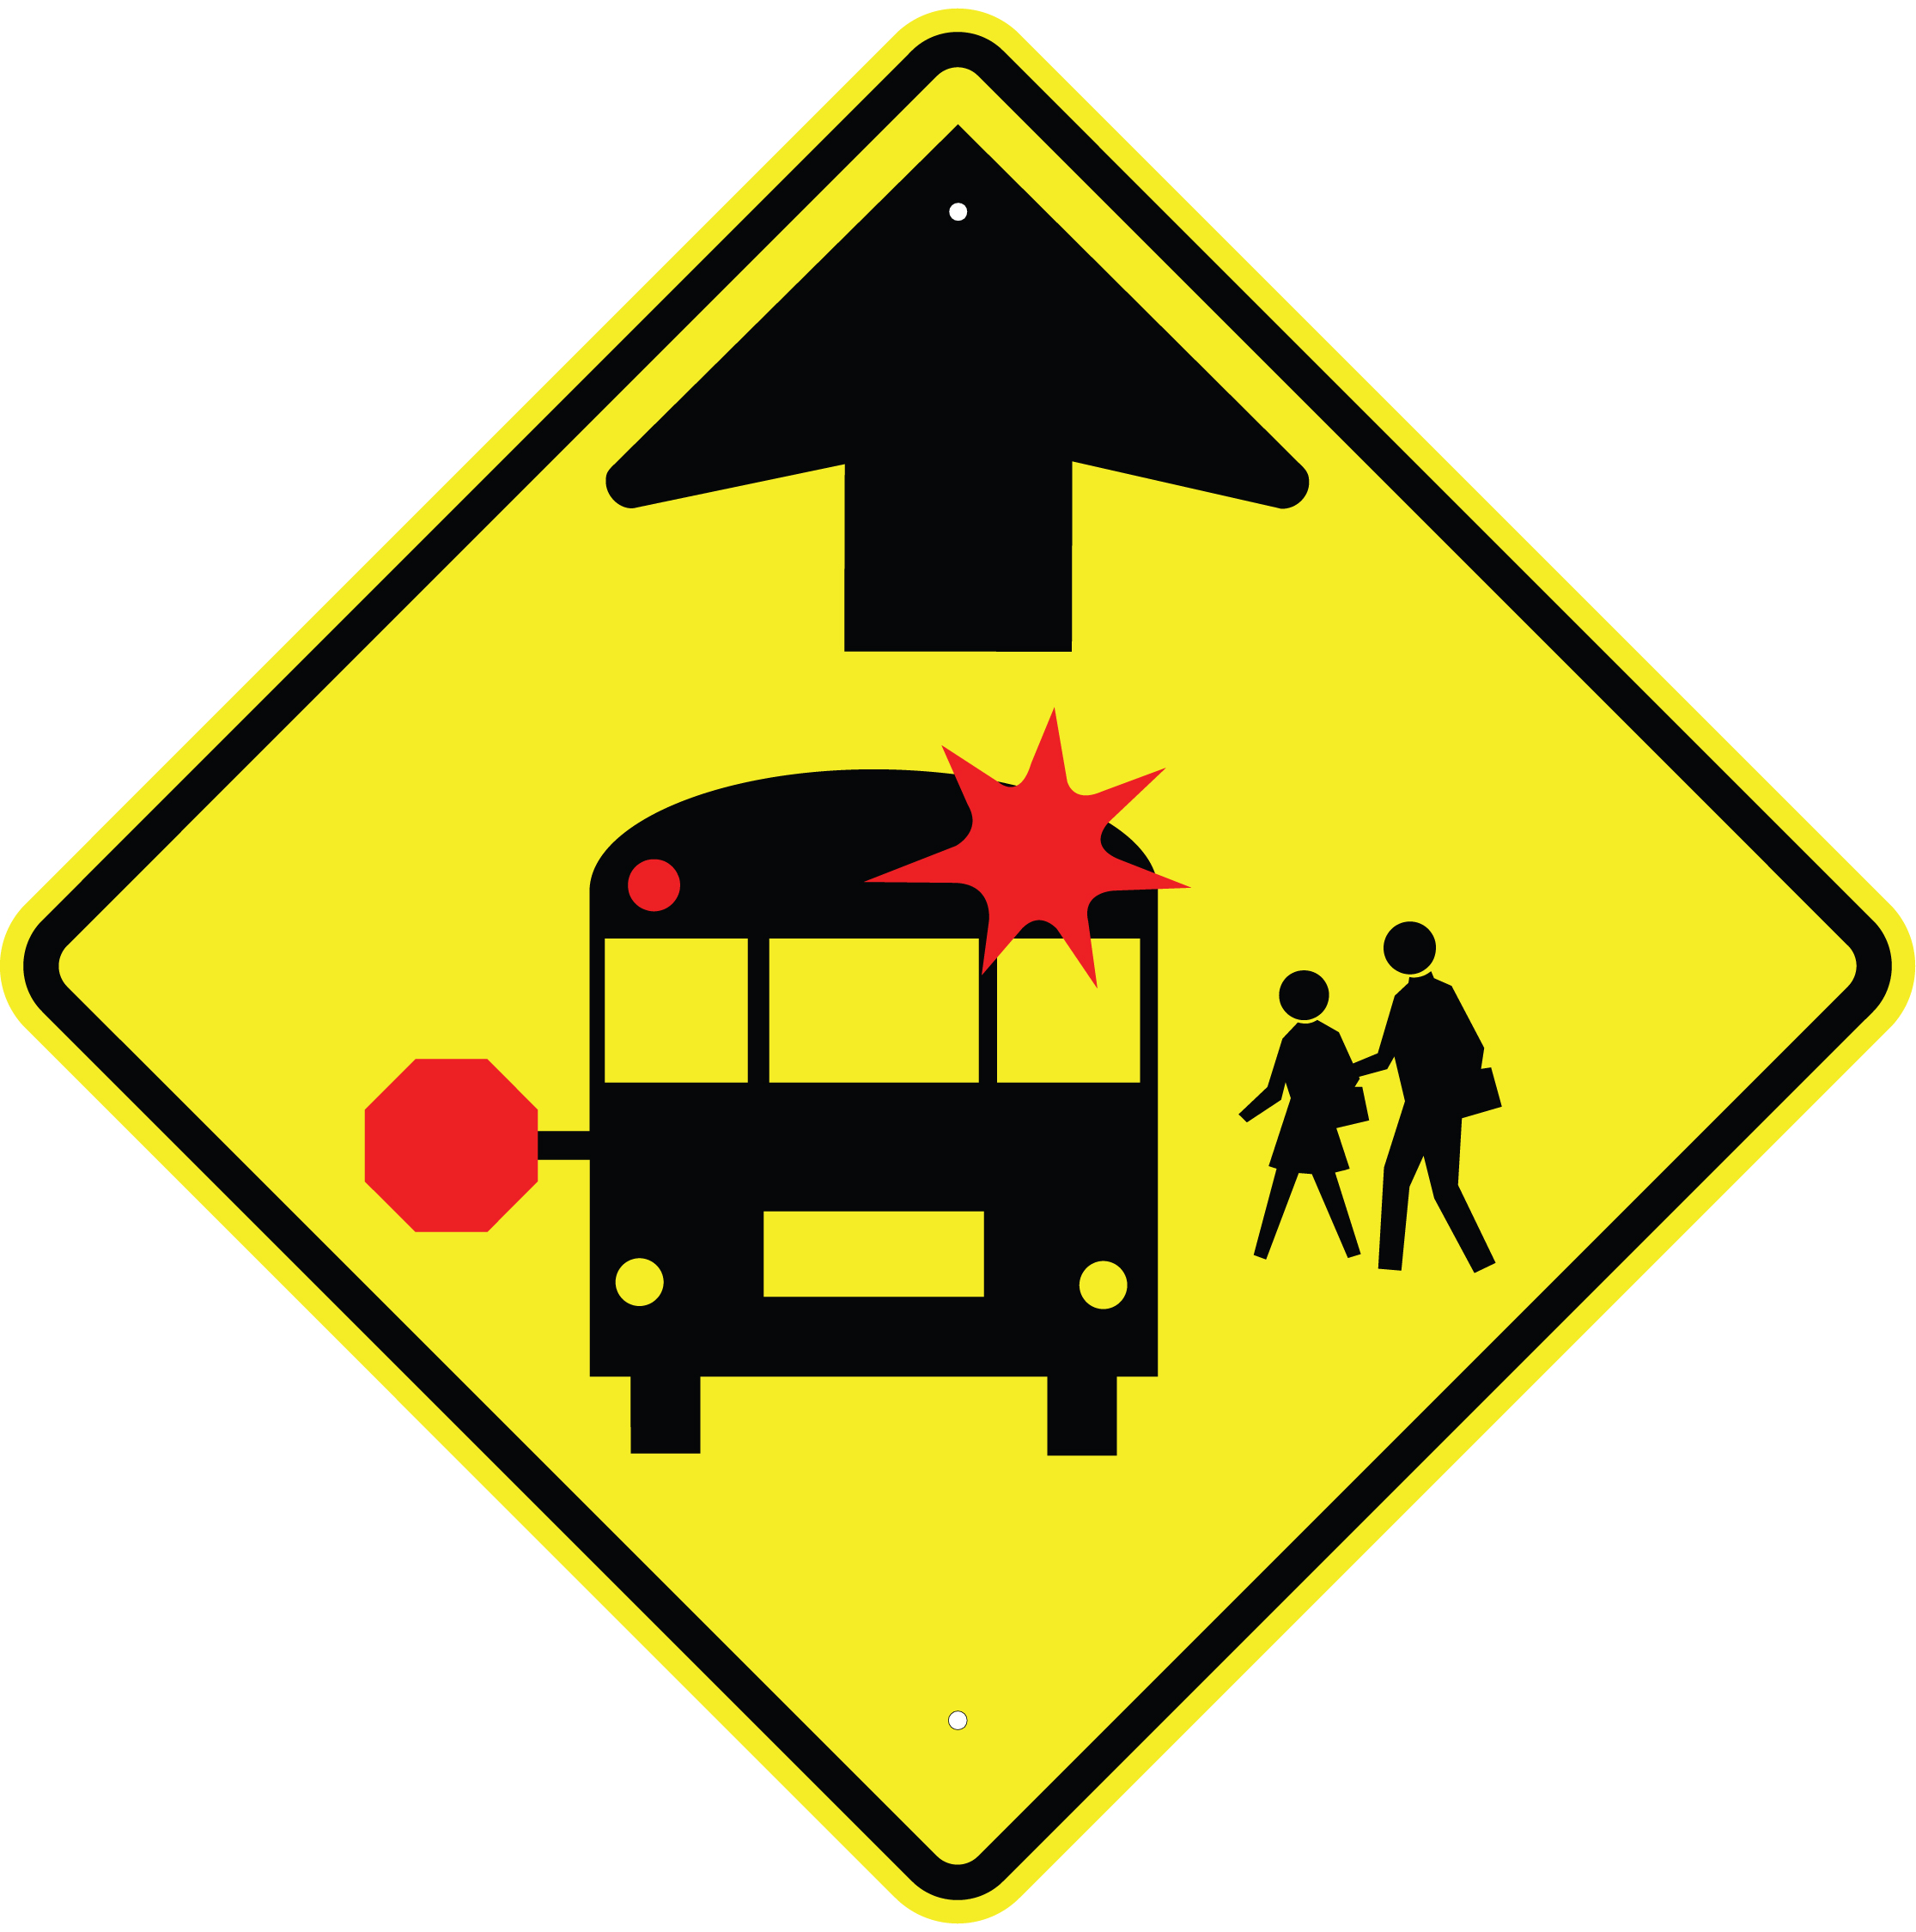 Yellow clipart stop sign Clipart school%20bus%20stop%20sign%20clip%20art Stop Sign Images